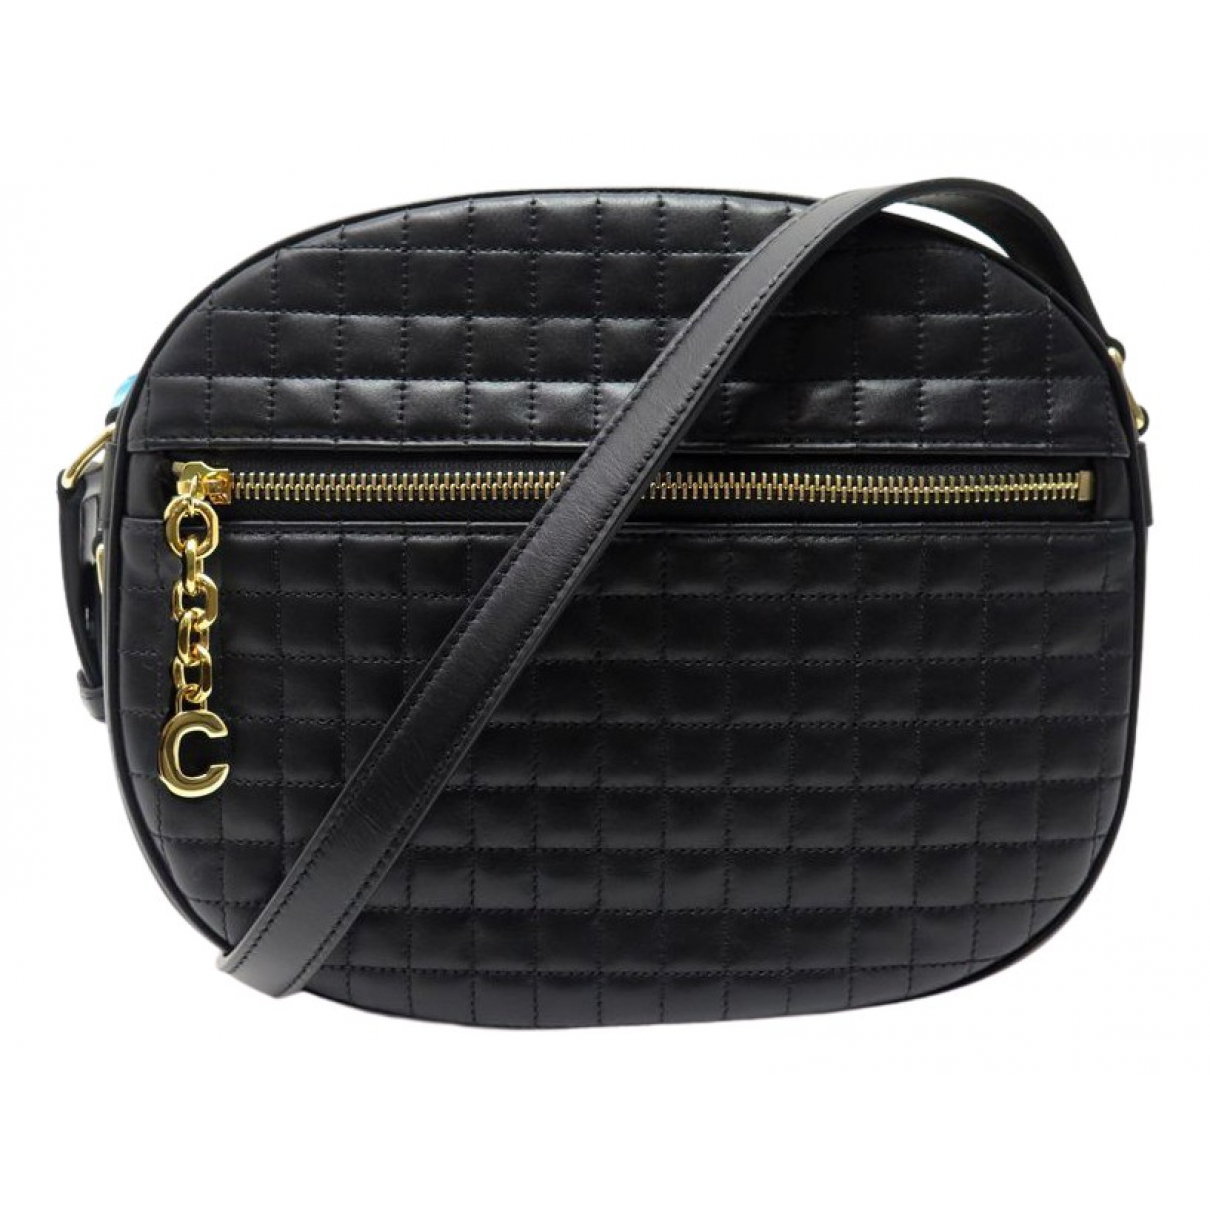 Celine C charm Black Leather handbag for Women \N